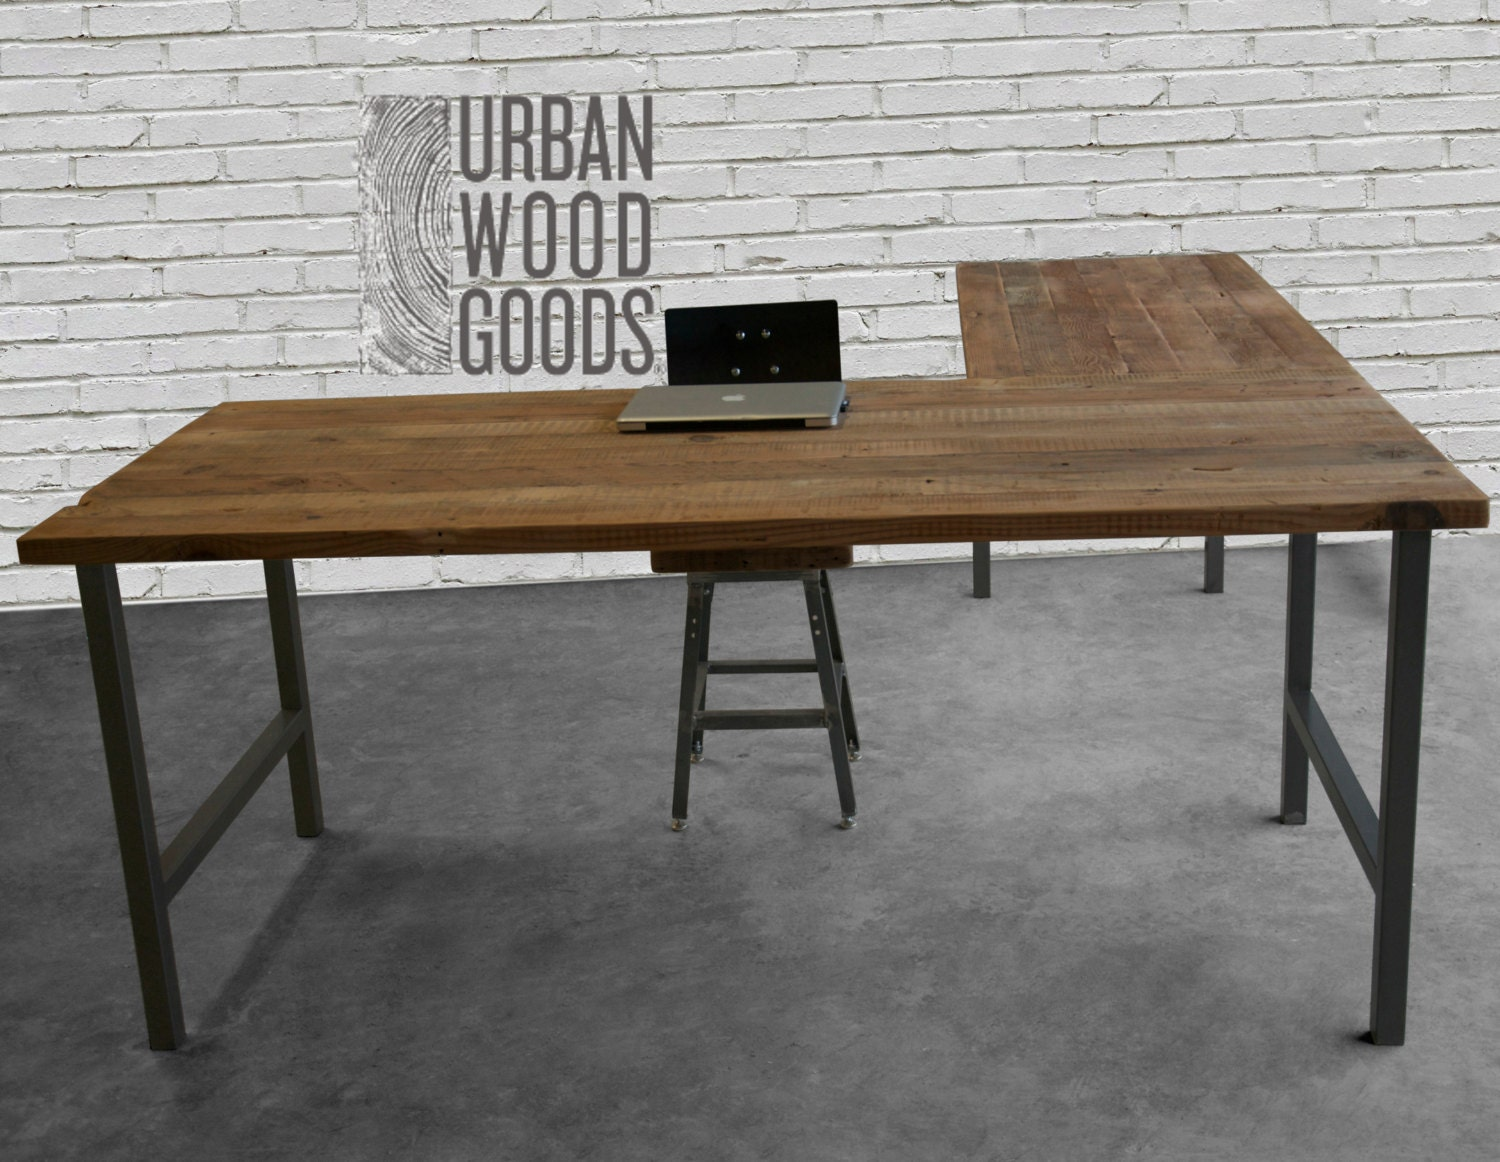 L Shaped Desk with reclaimed wood top and square steel legs : ilfullxfull781782031i8tc from www.etsy.com size 1500 x 1162 jpeg 314kB